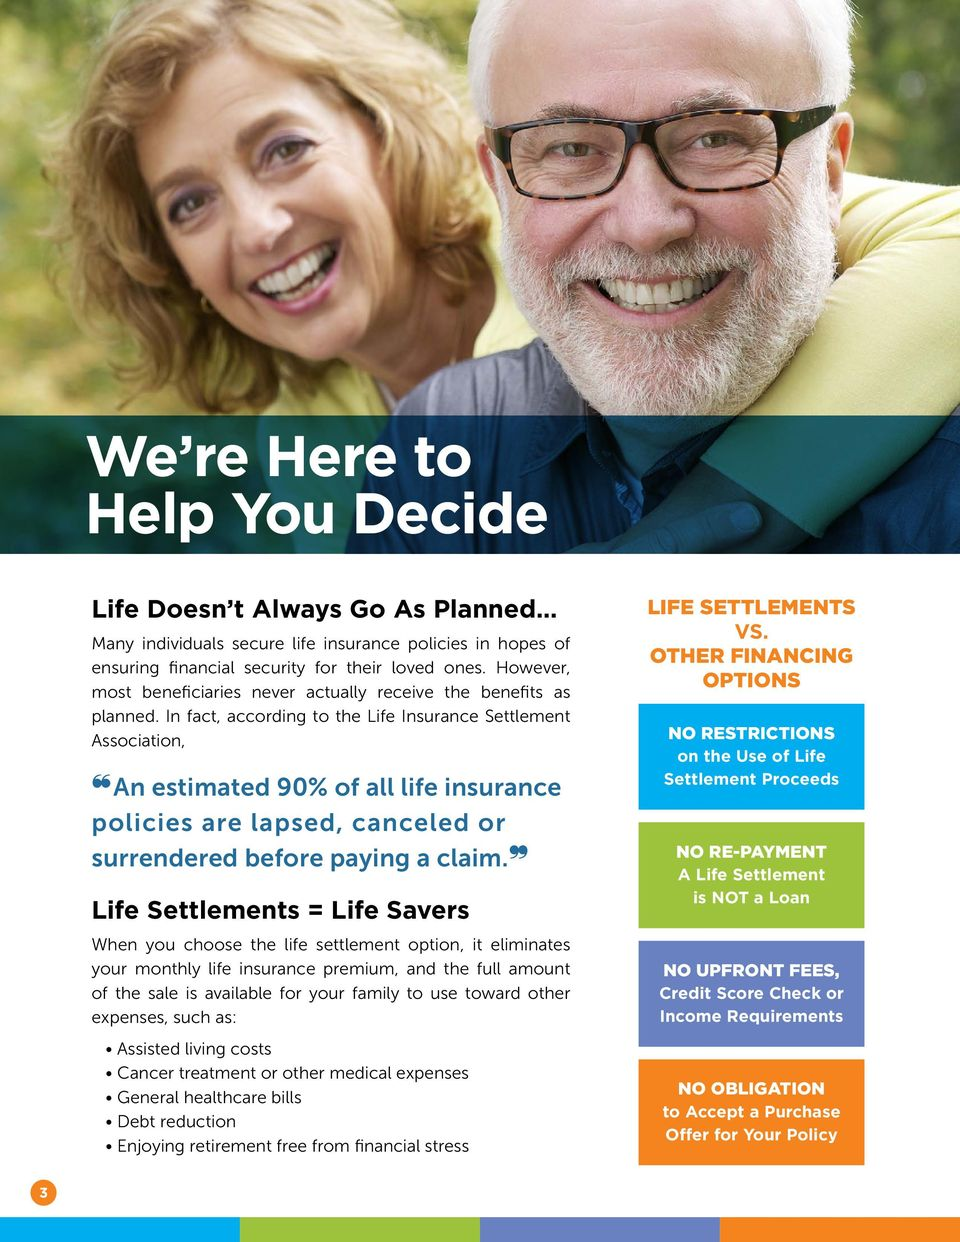 In fact, according to the Life Insurance Settlement Association, An estimated 90% of all life insurance policies are lapsed, canceled or surrendered before paying a claim.